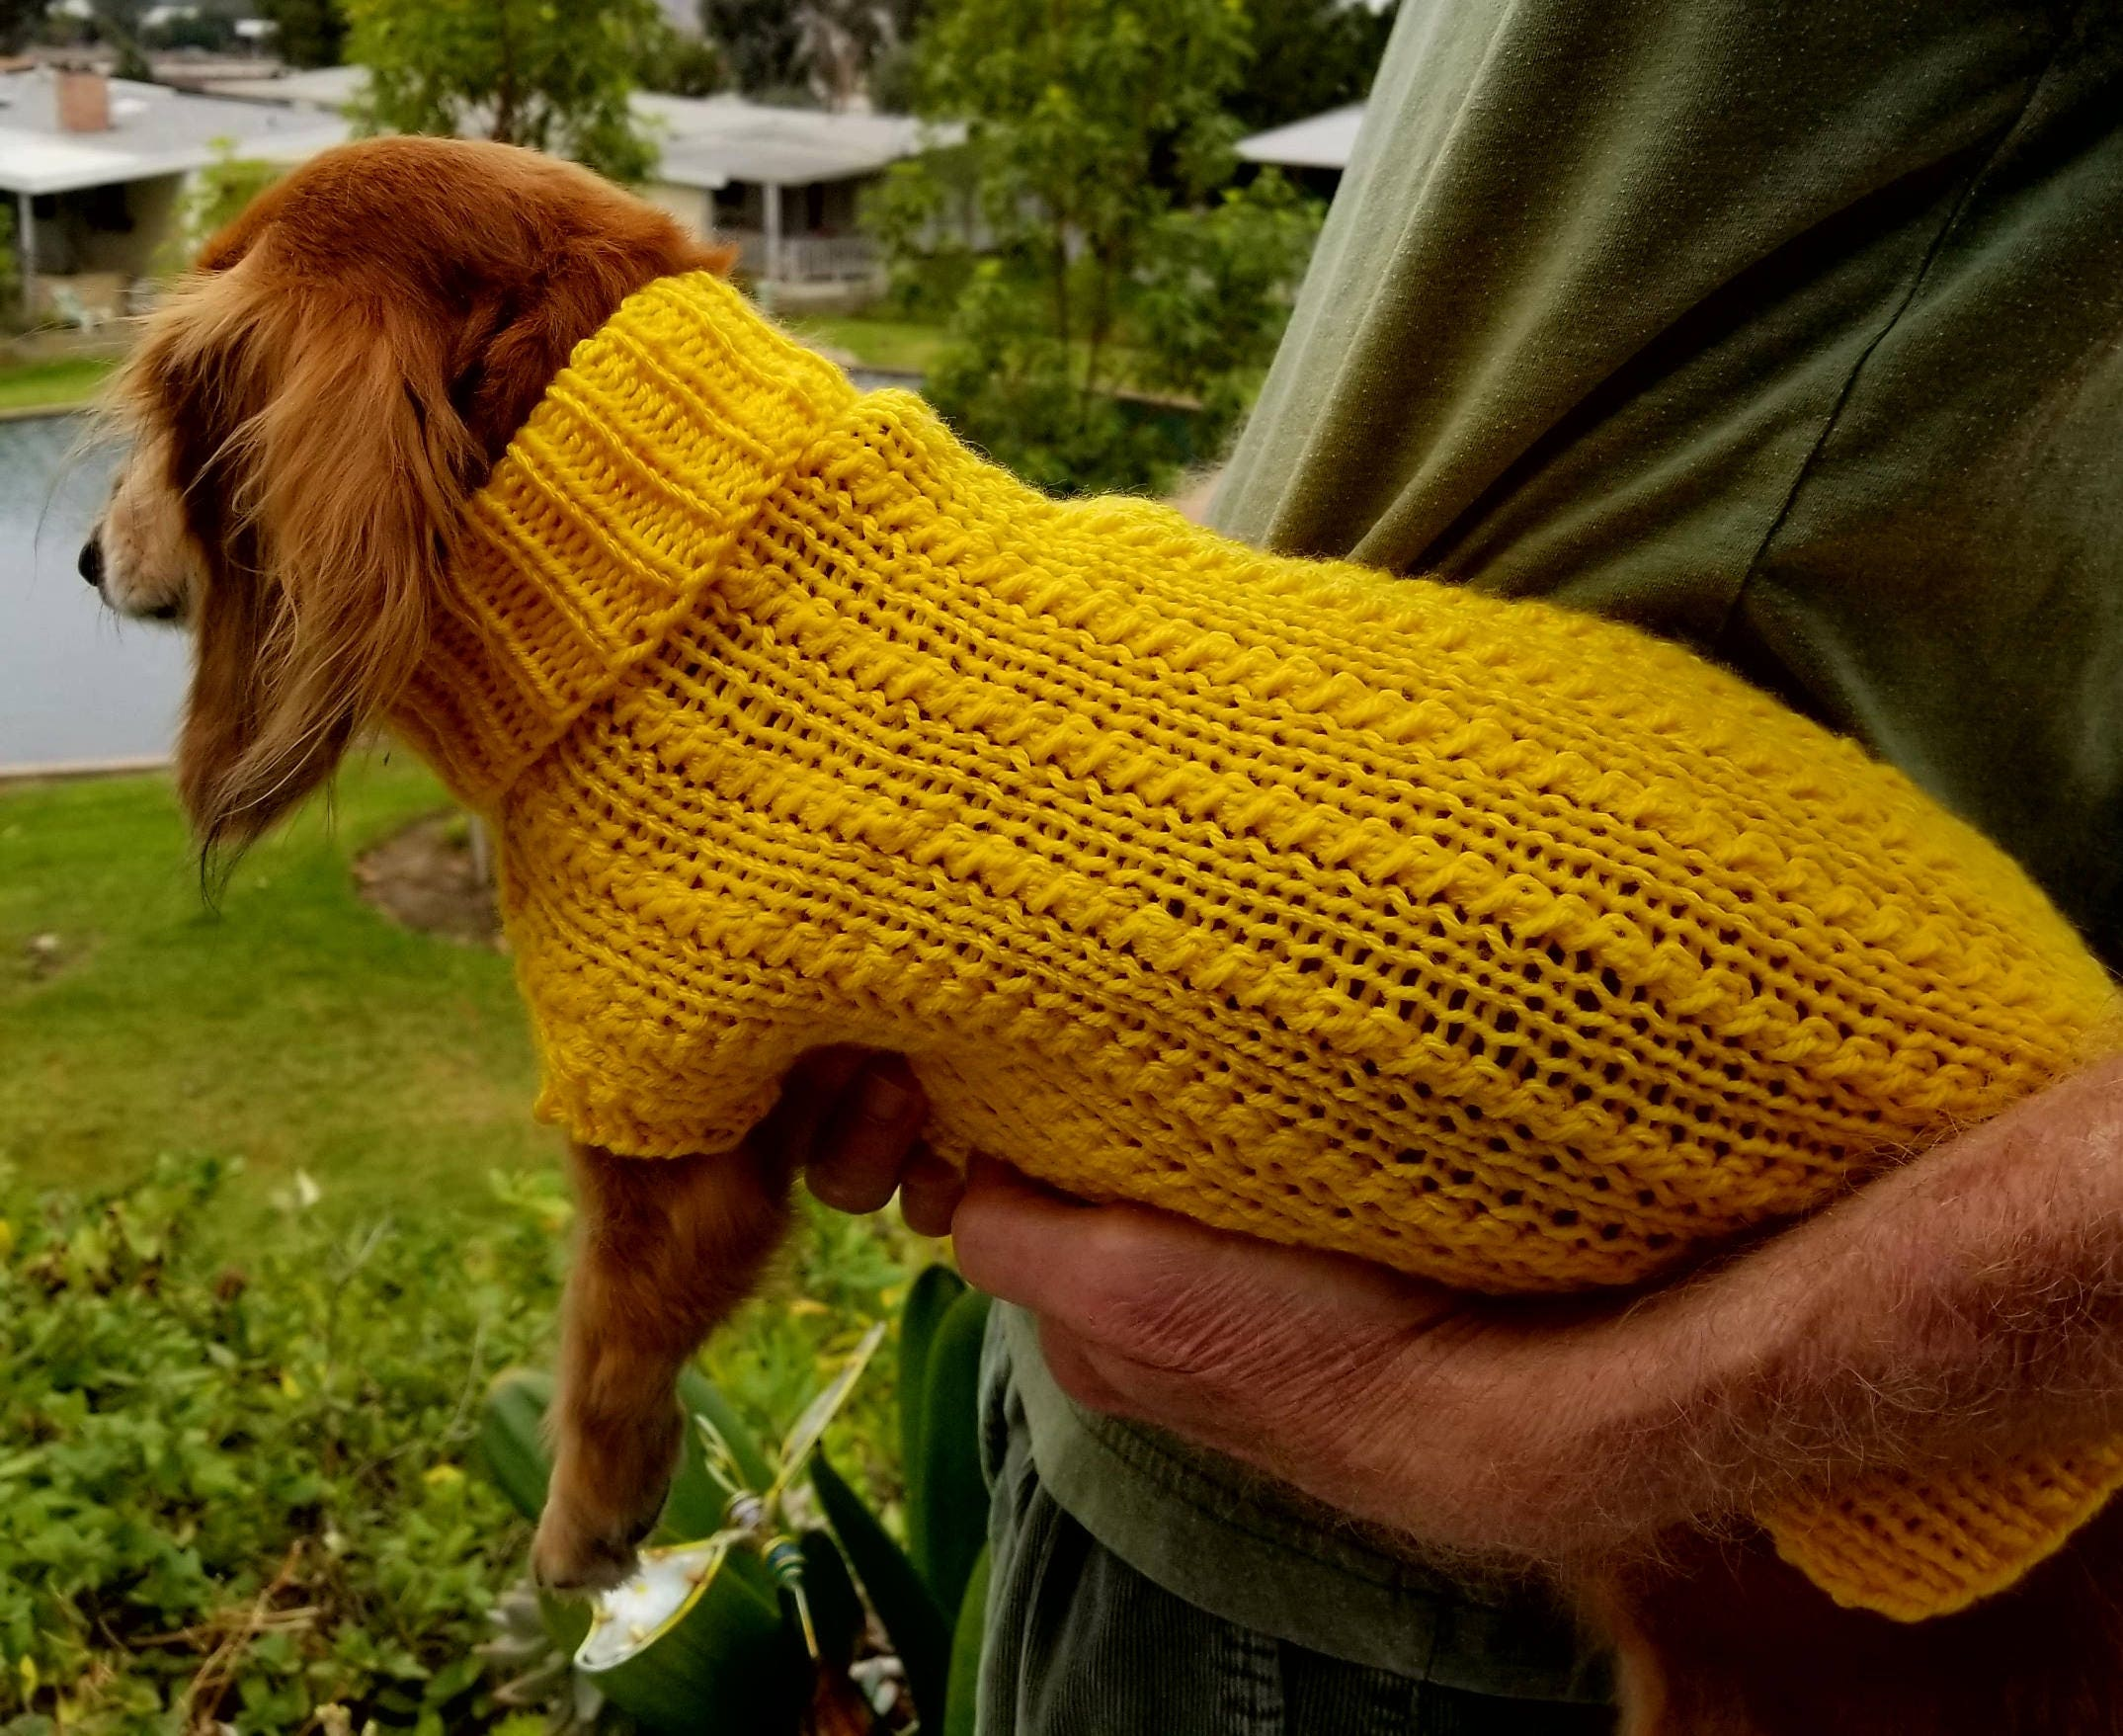 Pdf download for lenas twisty columns miniature dachshund knit pdf download for lenas twisty columns miniature dachshund knit sweater pattern bankloansurffo Gallery